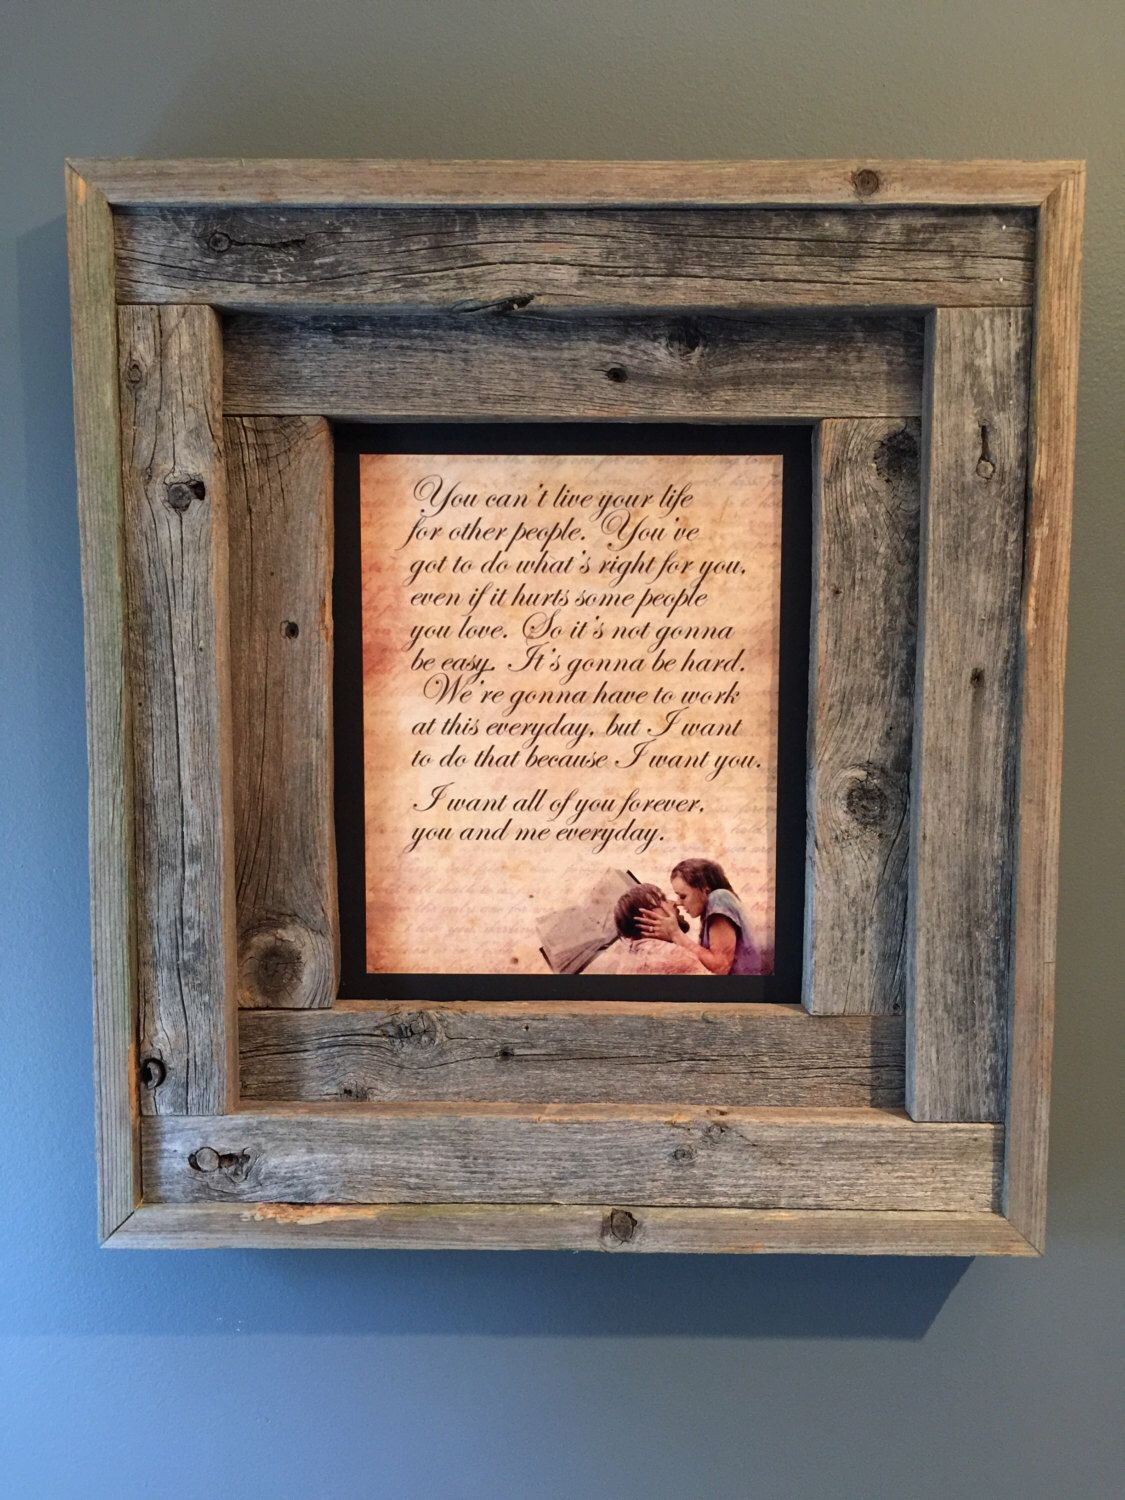 Weathered Gray Rustic Handmade Picture Frame Display Natural Etsy Handmade Picture Frames Picture On Wood Wood Picture Frames